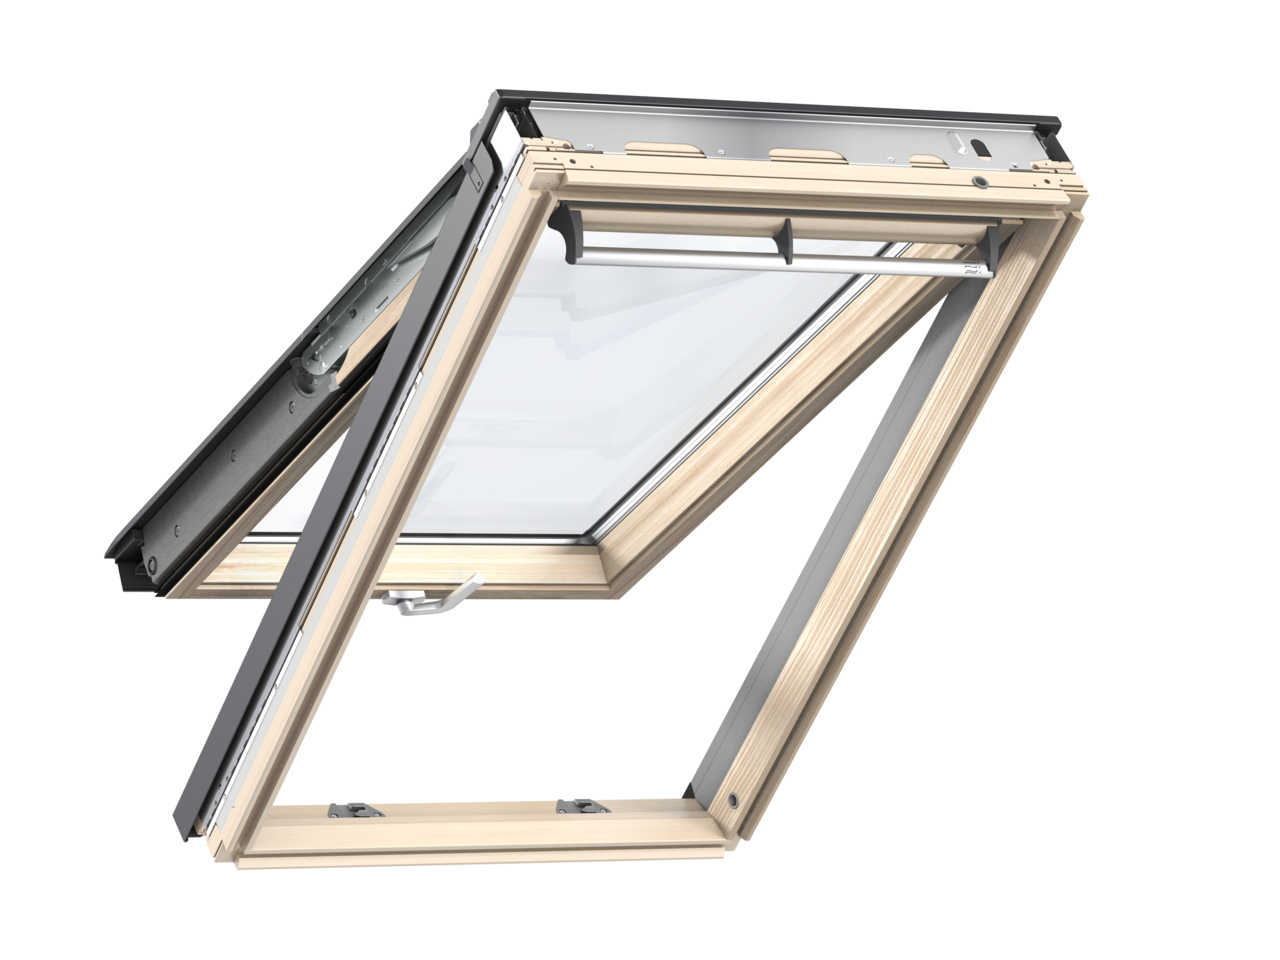 Velux GPL MK08 780 x 1400mm Top Hung Standard 70Pane Roof Window - Pine